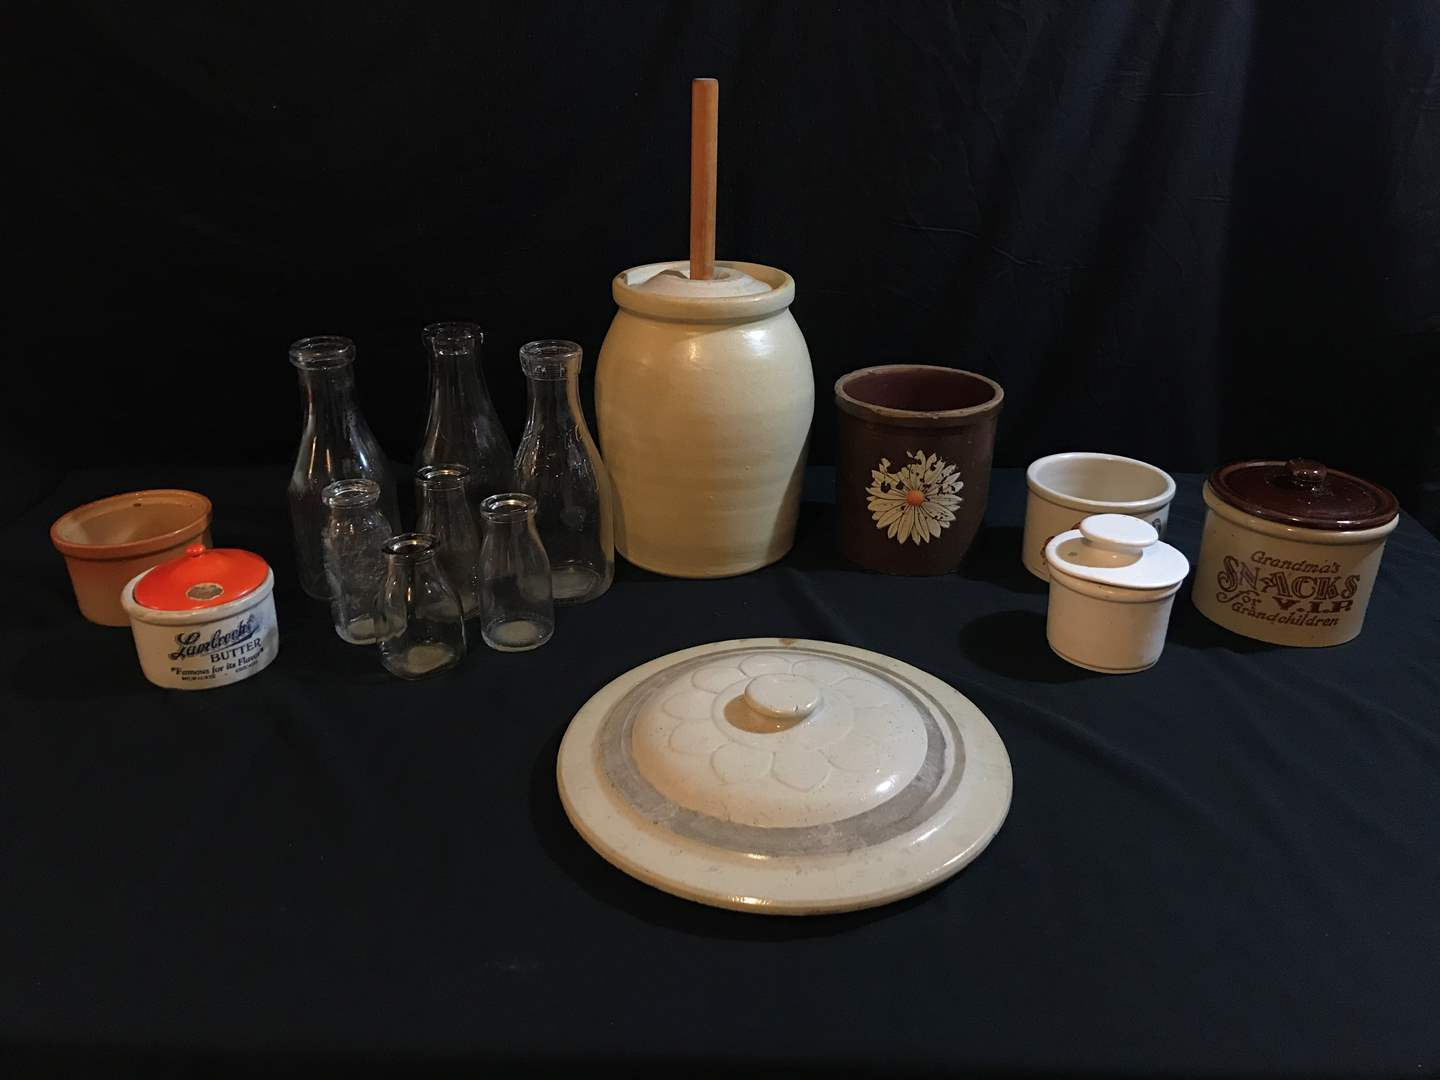 Lot # 95 - Vintage Butter Churn, Vintage Milk Bottles, Stoneware Bowls, Crock Lids & Butter Jar (main image)